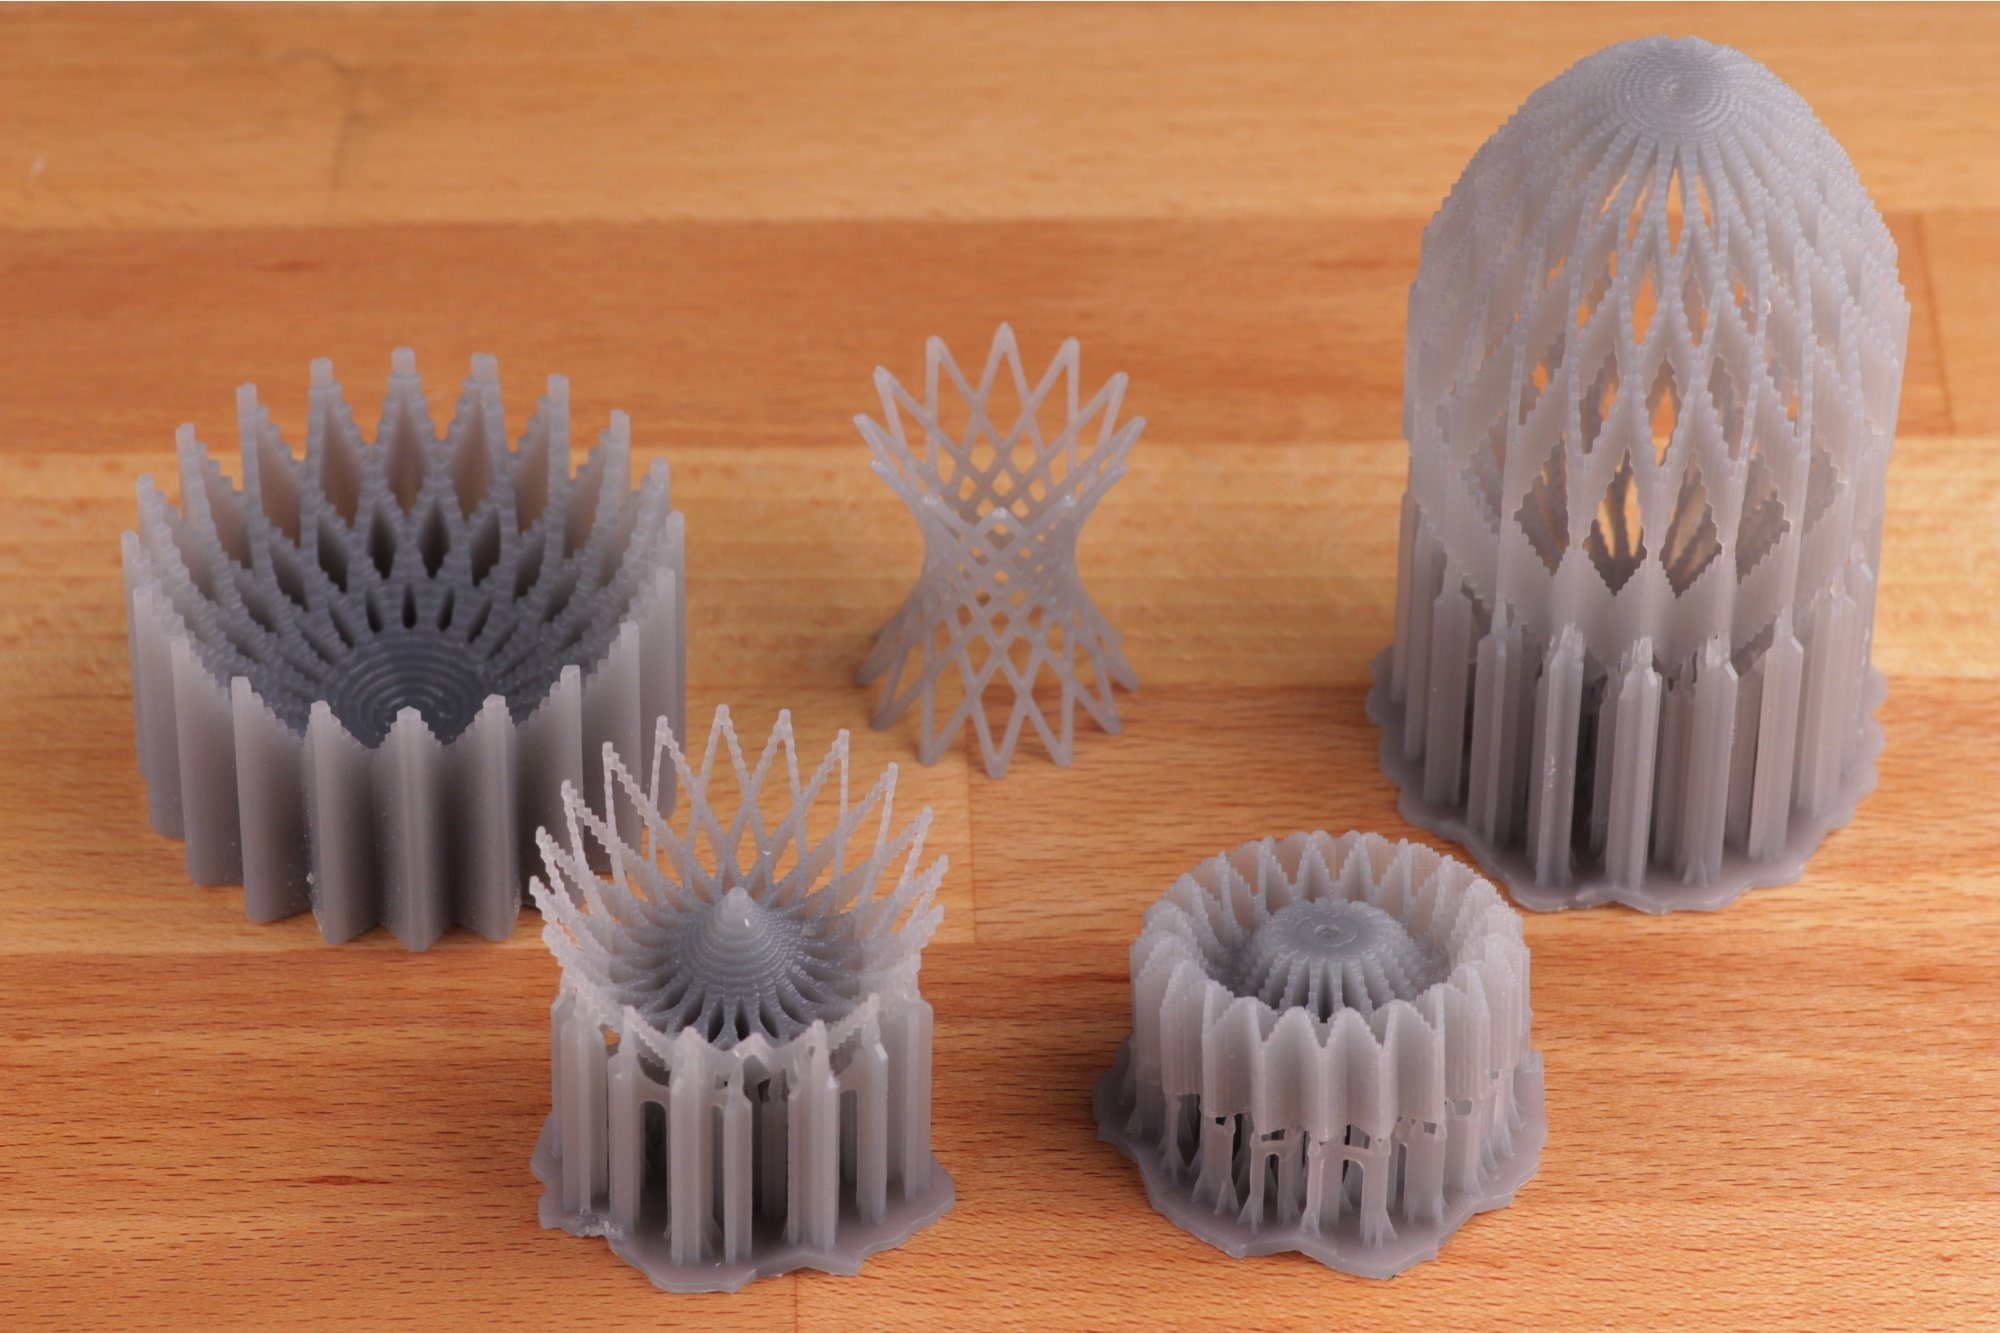 Formlabs at Harvard Graduate School of Design 5 models